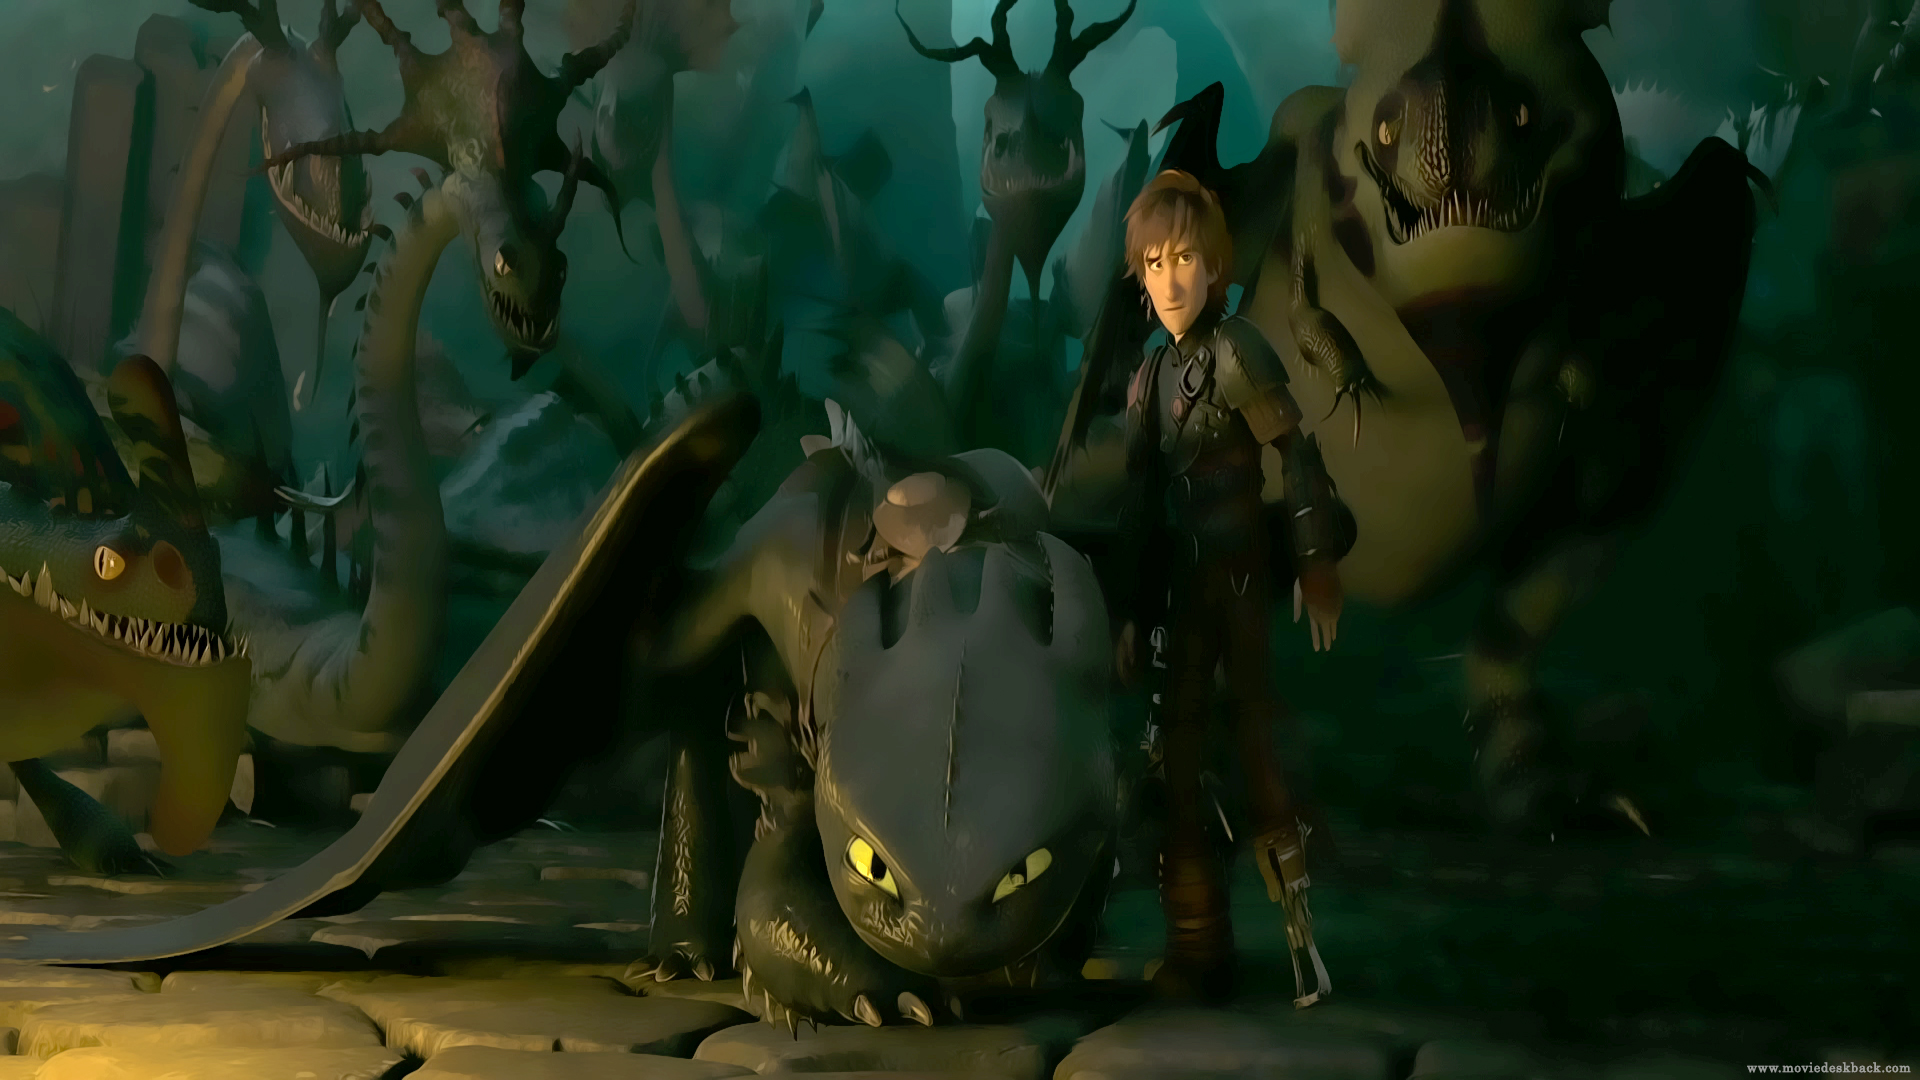 How To Train Your Dragon Hd Wallpapers Backgrounds 1920x1080